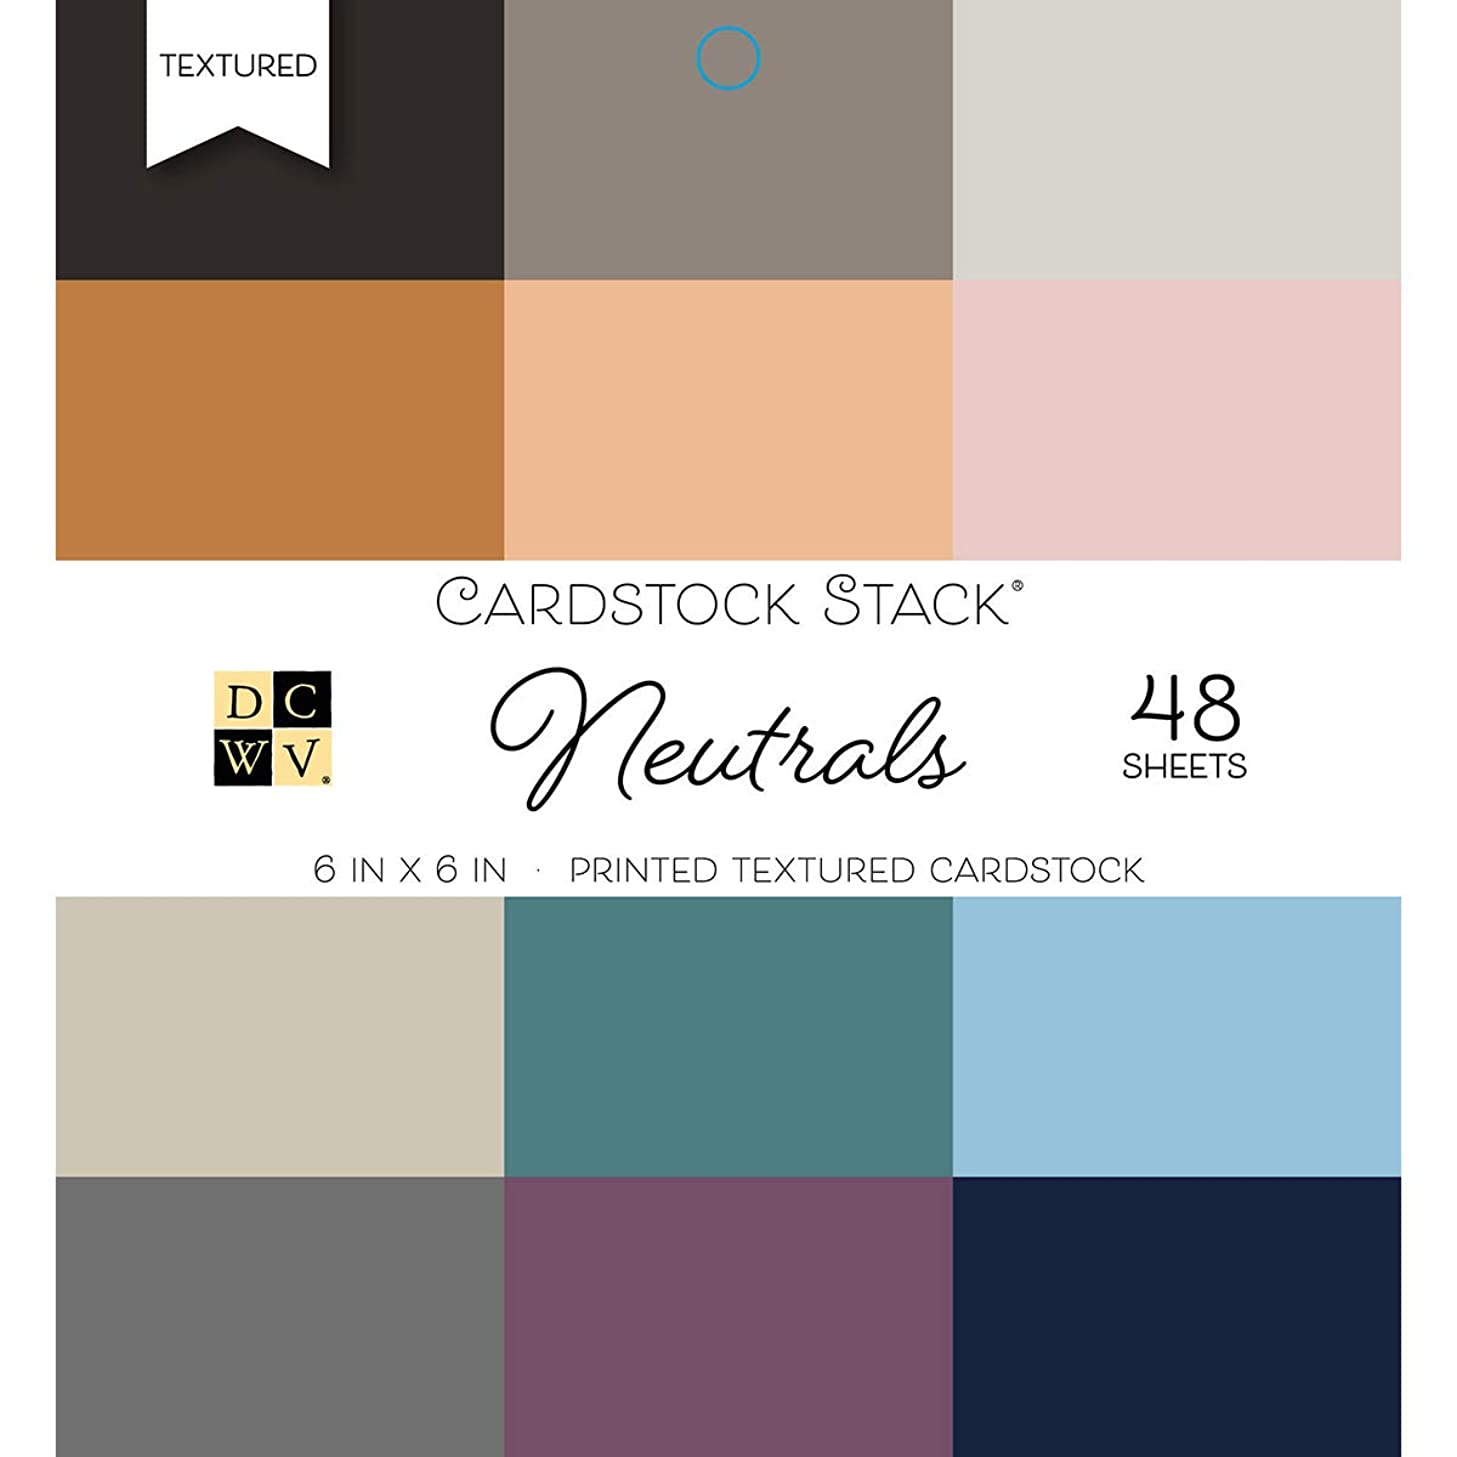 DCWV 6X6 Card Stock Neutrals Printed Textured Stack